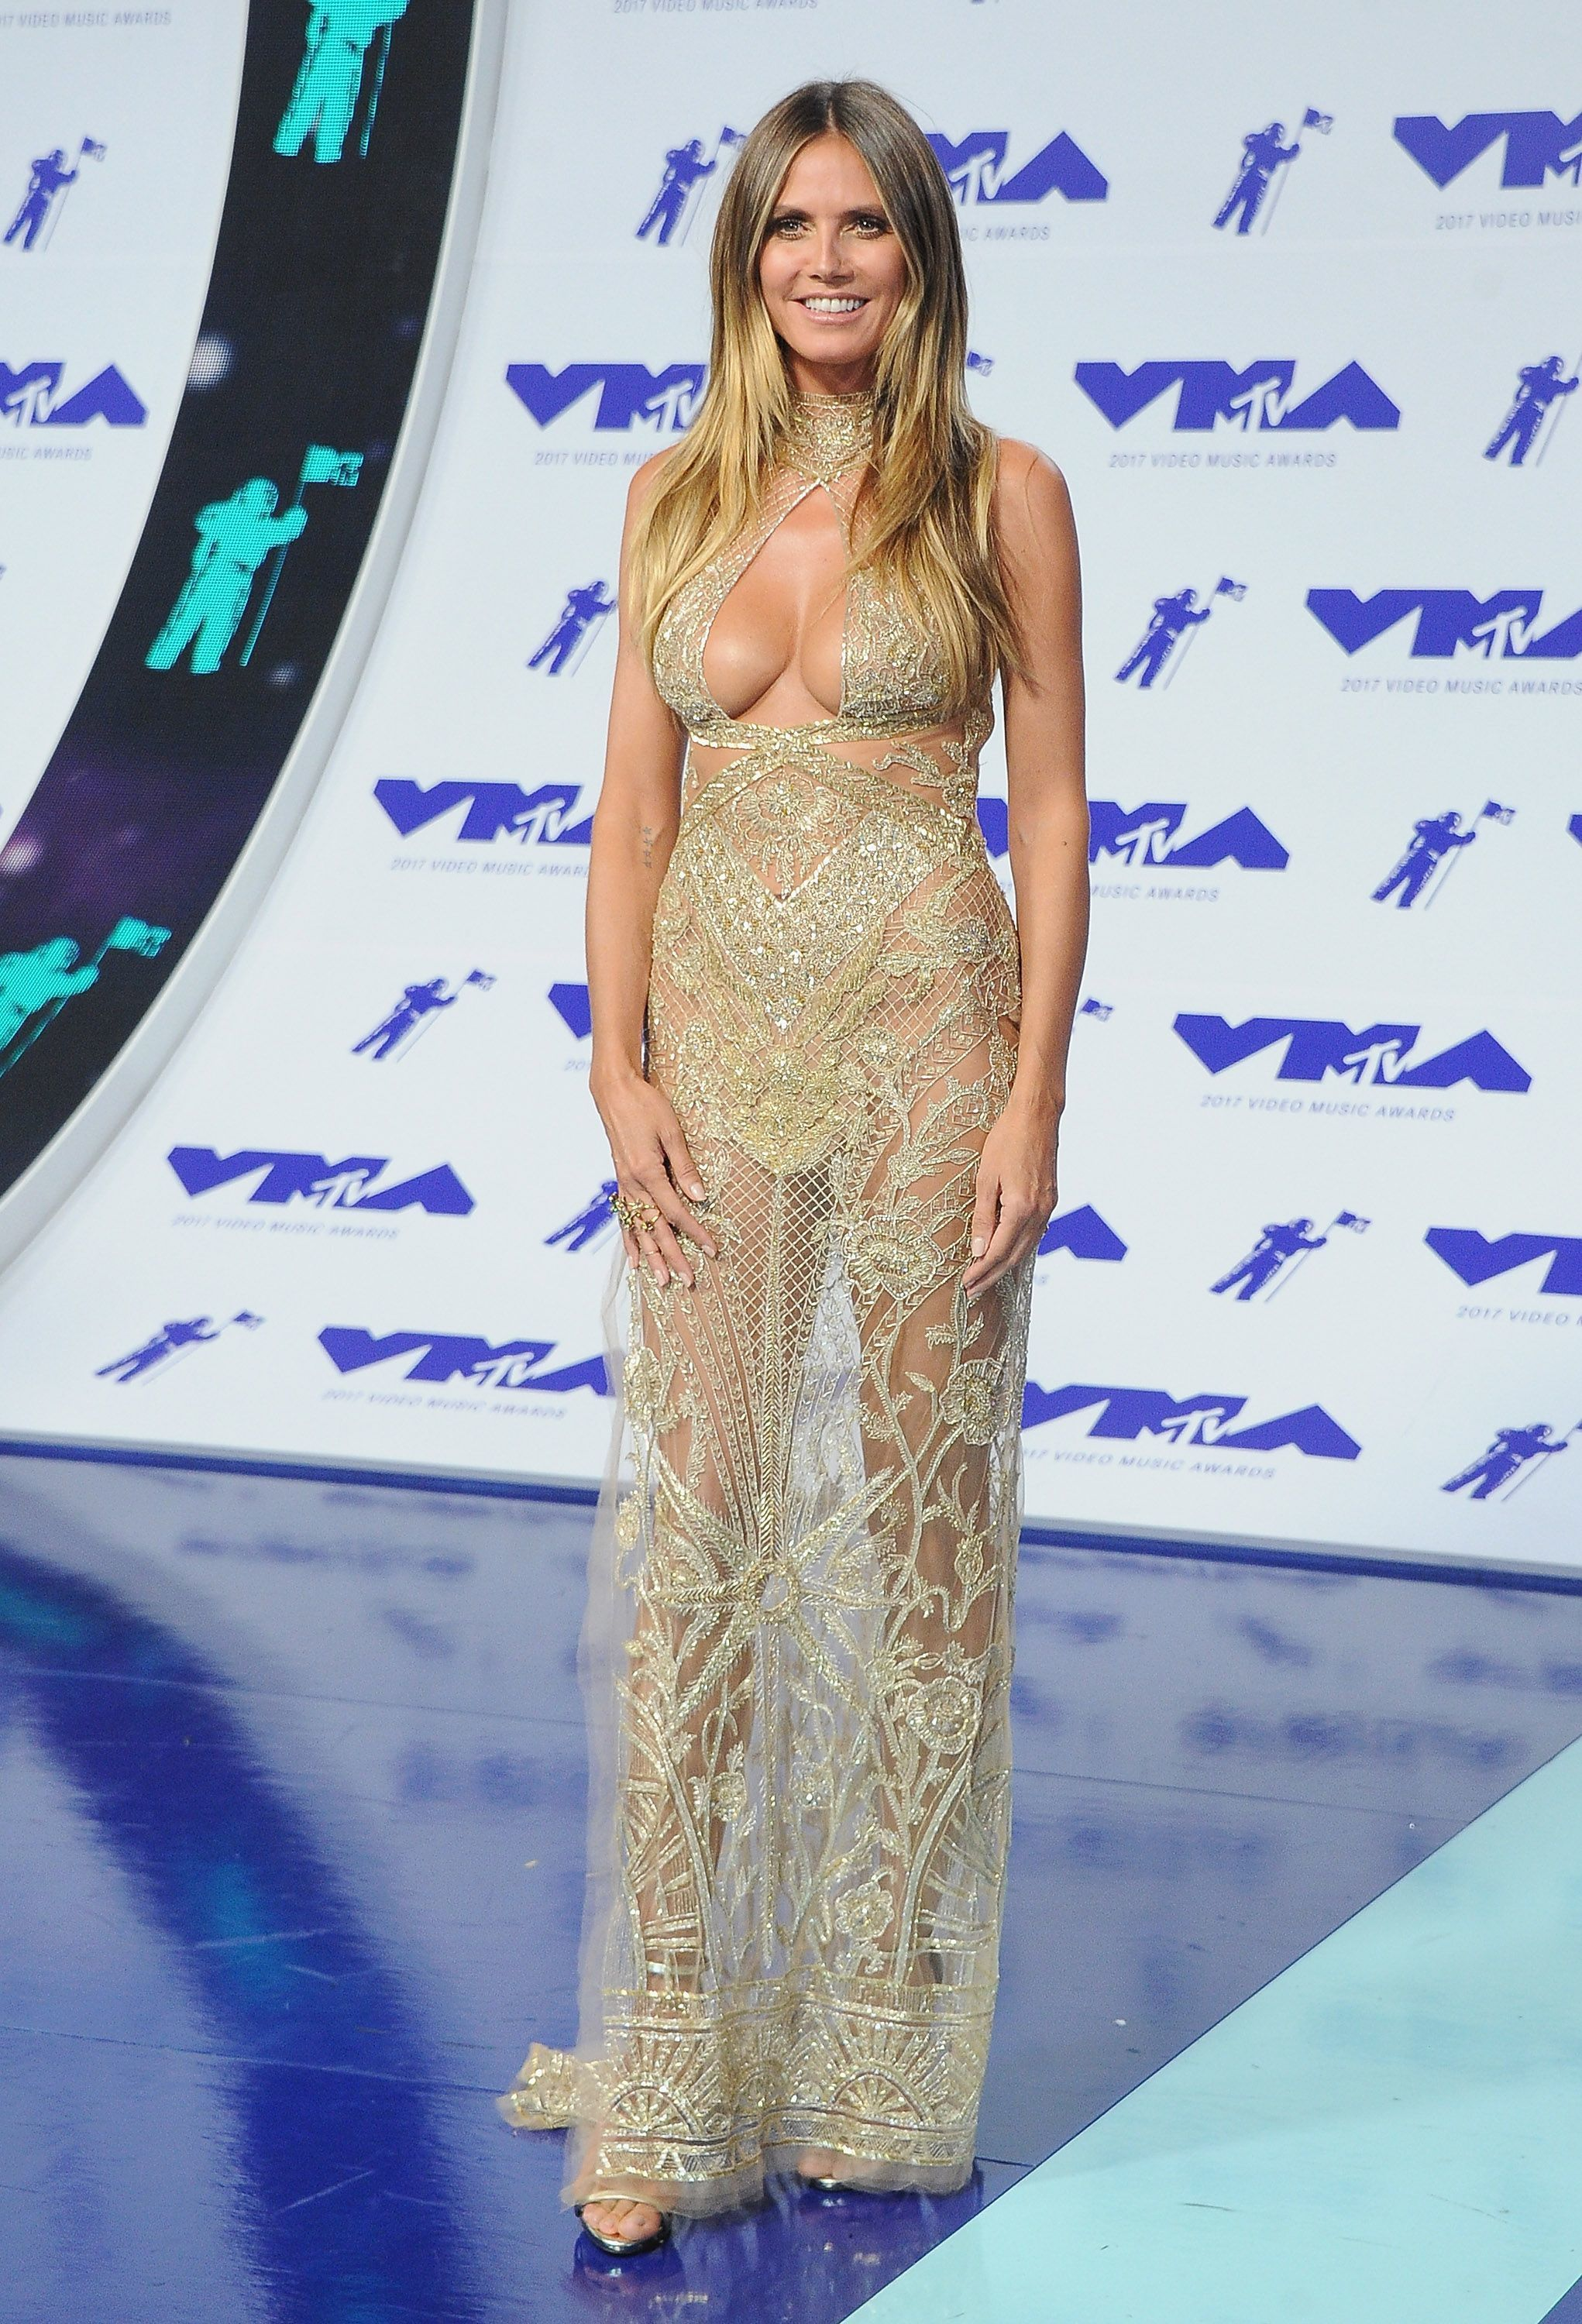 55e2391db001 Heidi Klum - The Best Fashion Moments From The 2017 VMAs